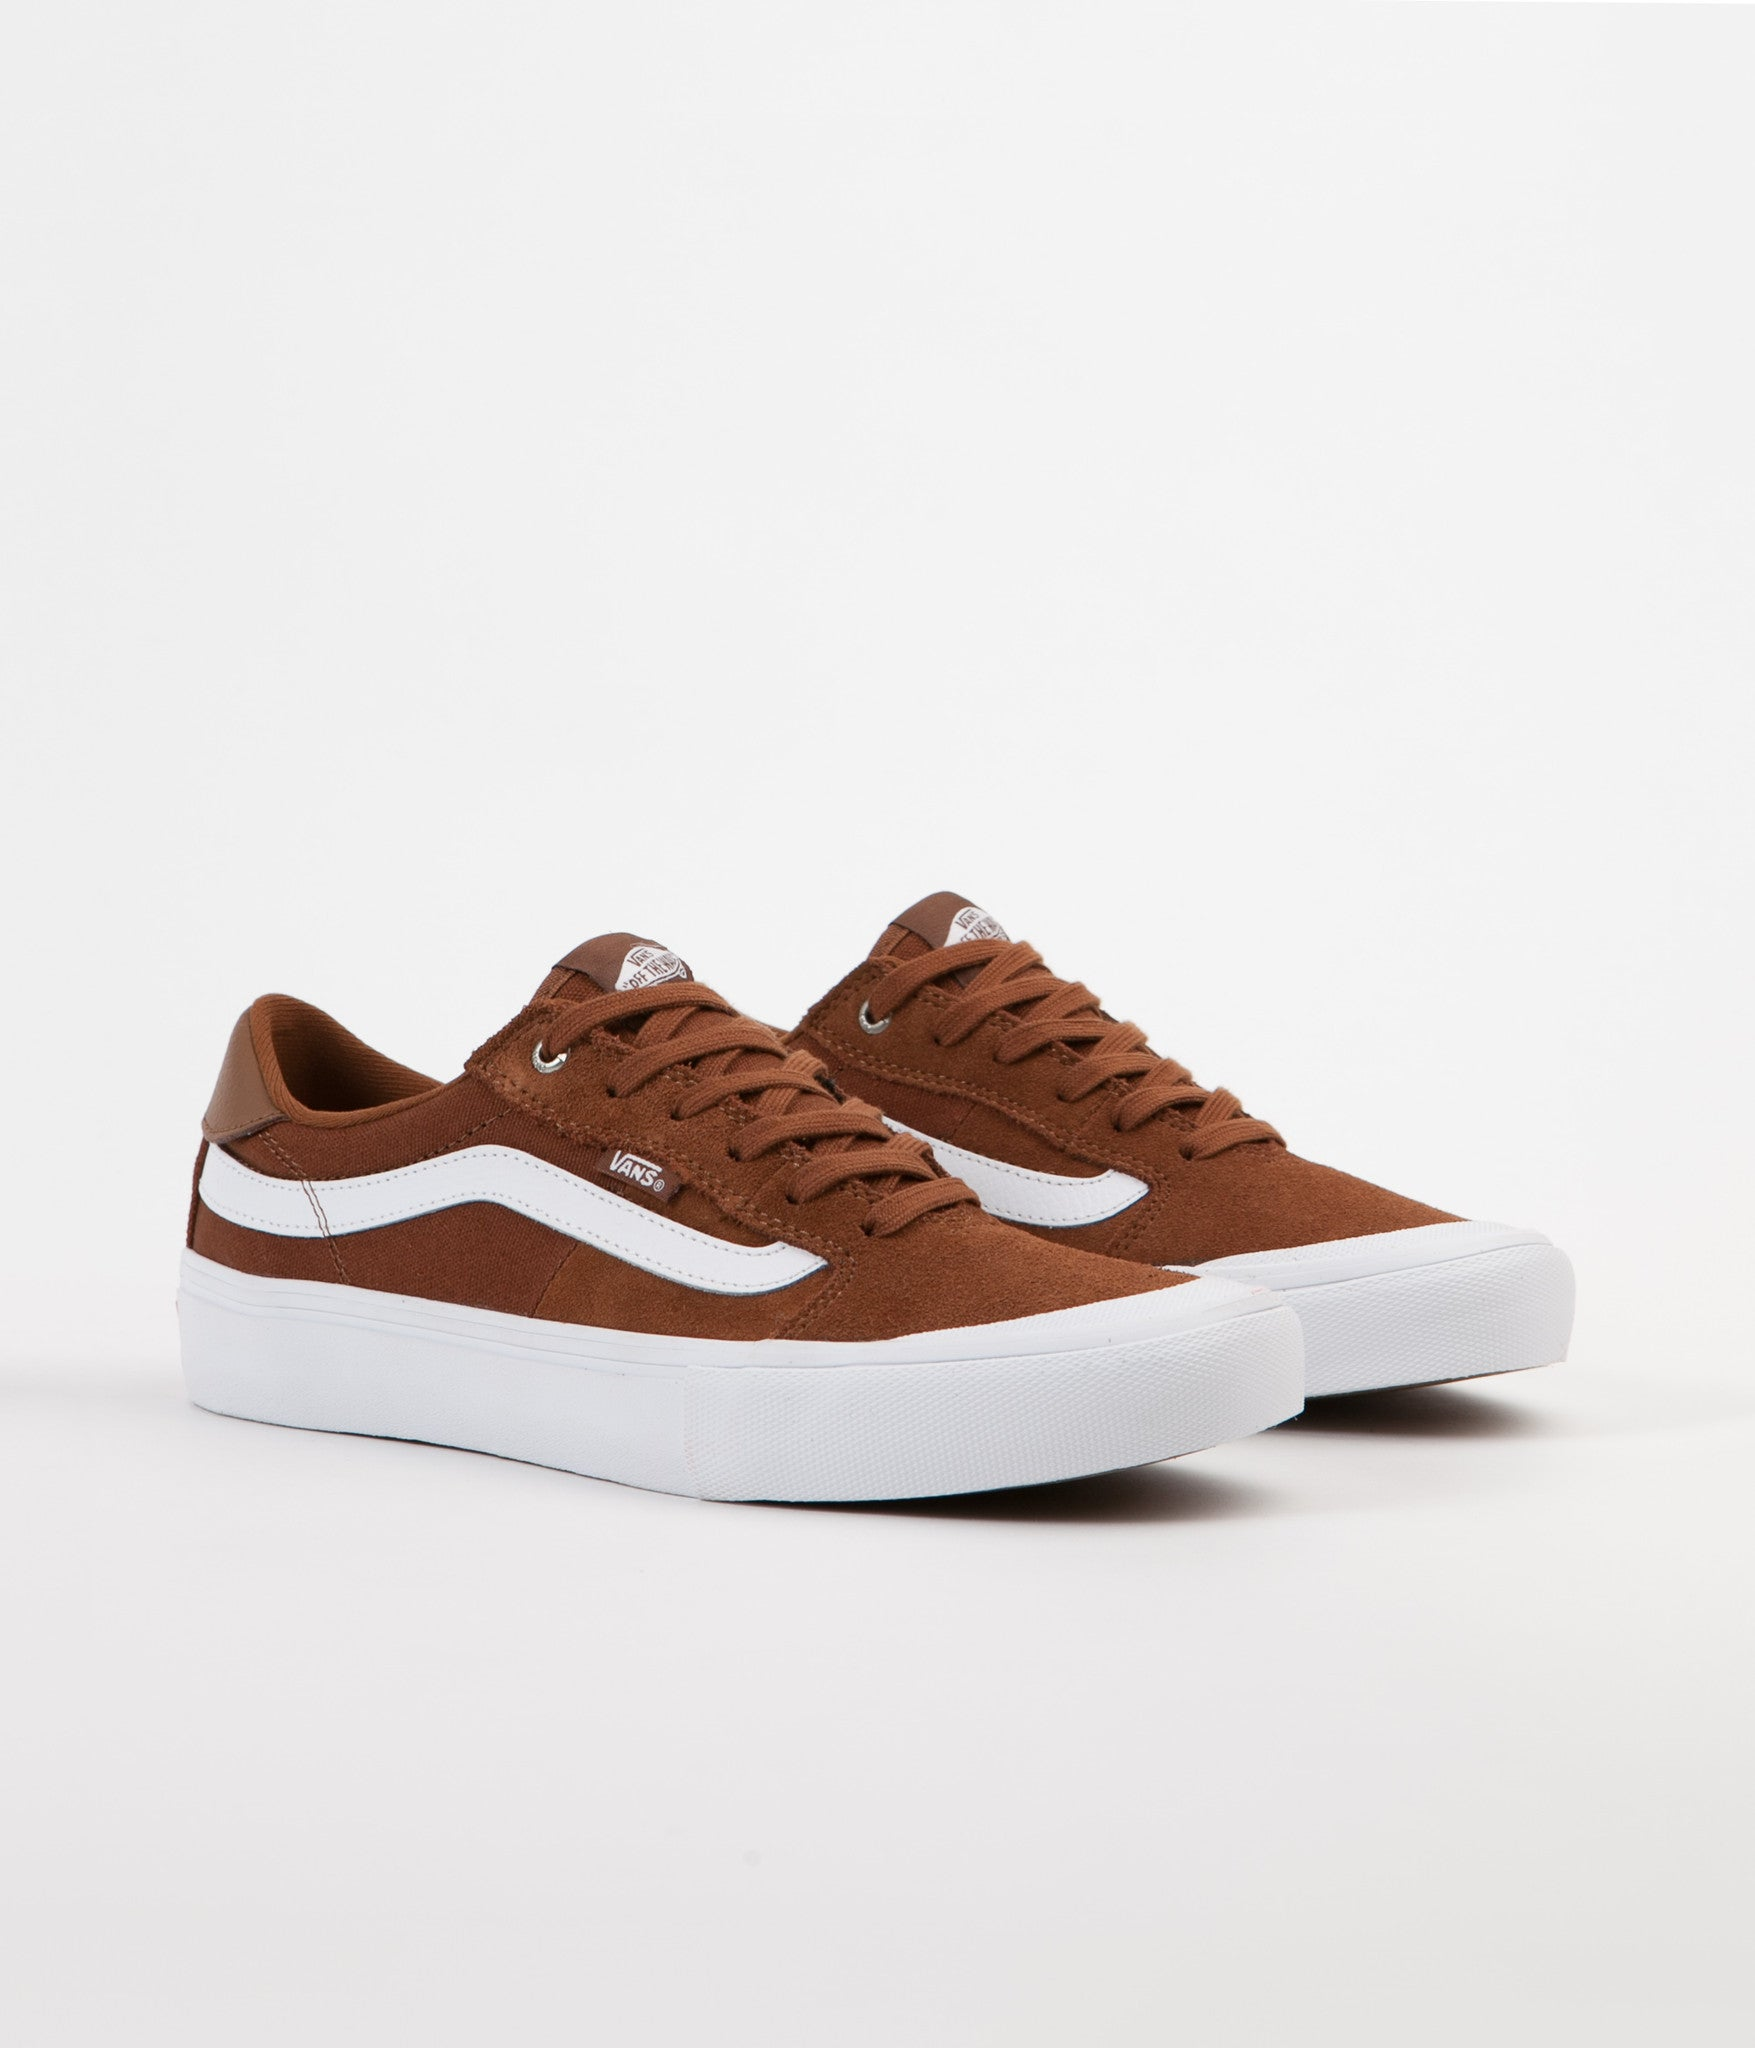 Vans Style 112 Pro Shoes - Tobacco / White